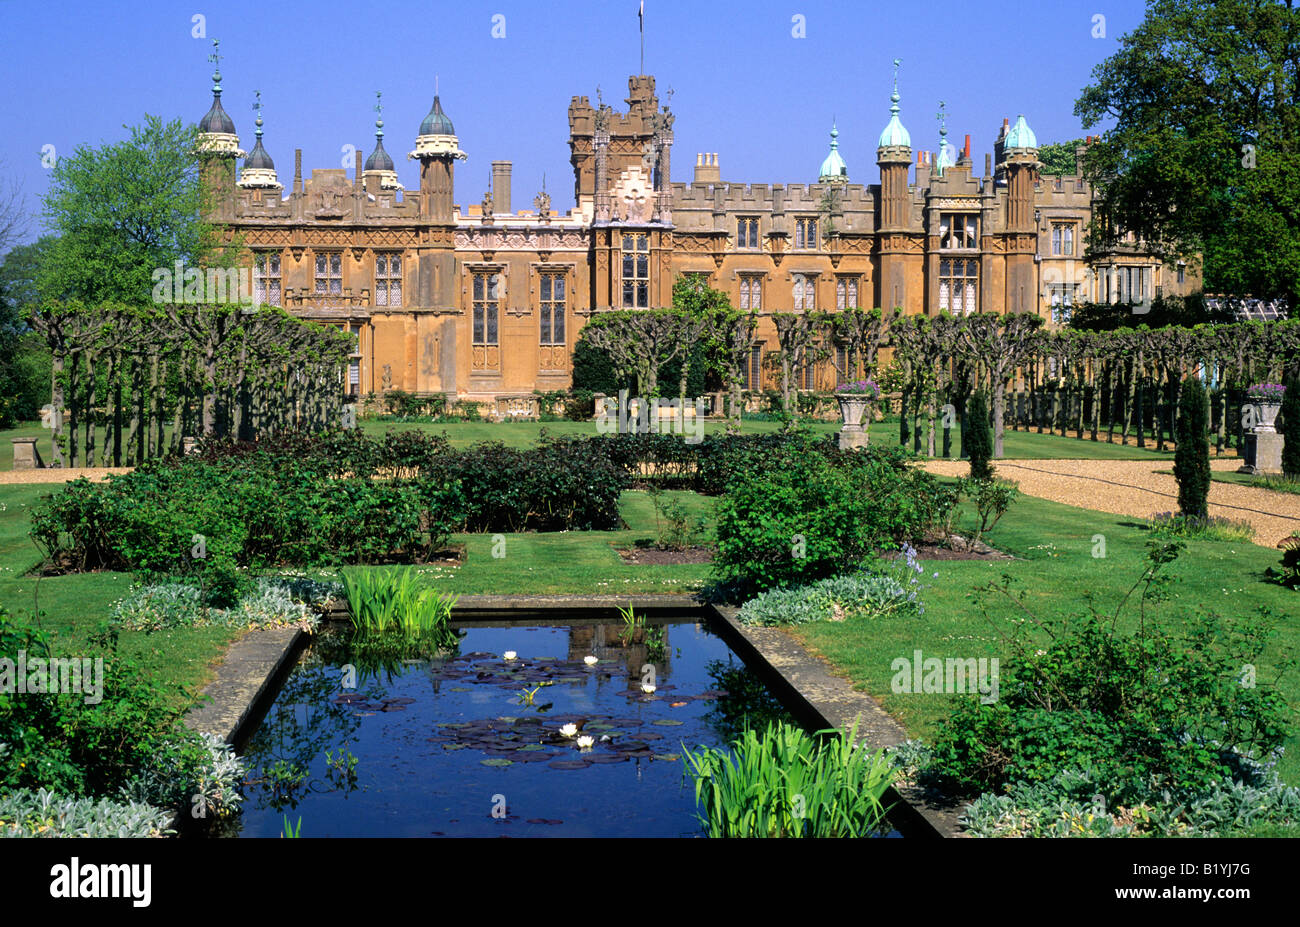 Knebworth House Hertfordshire English stately home lake ...